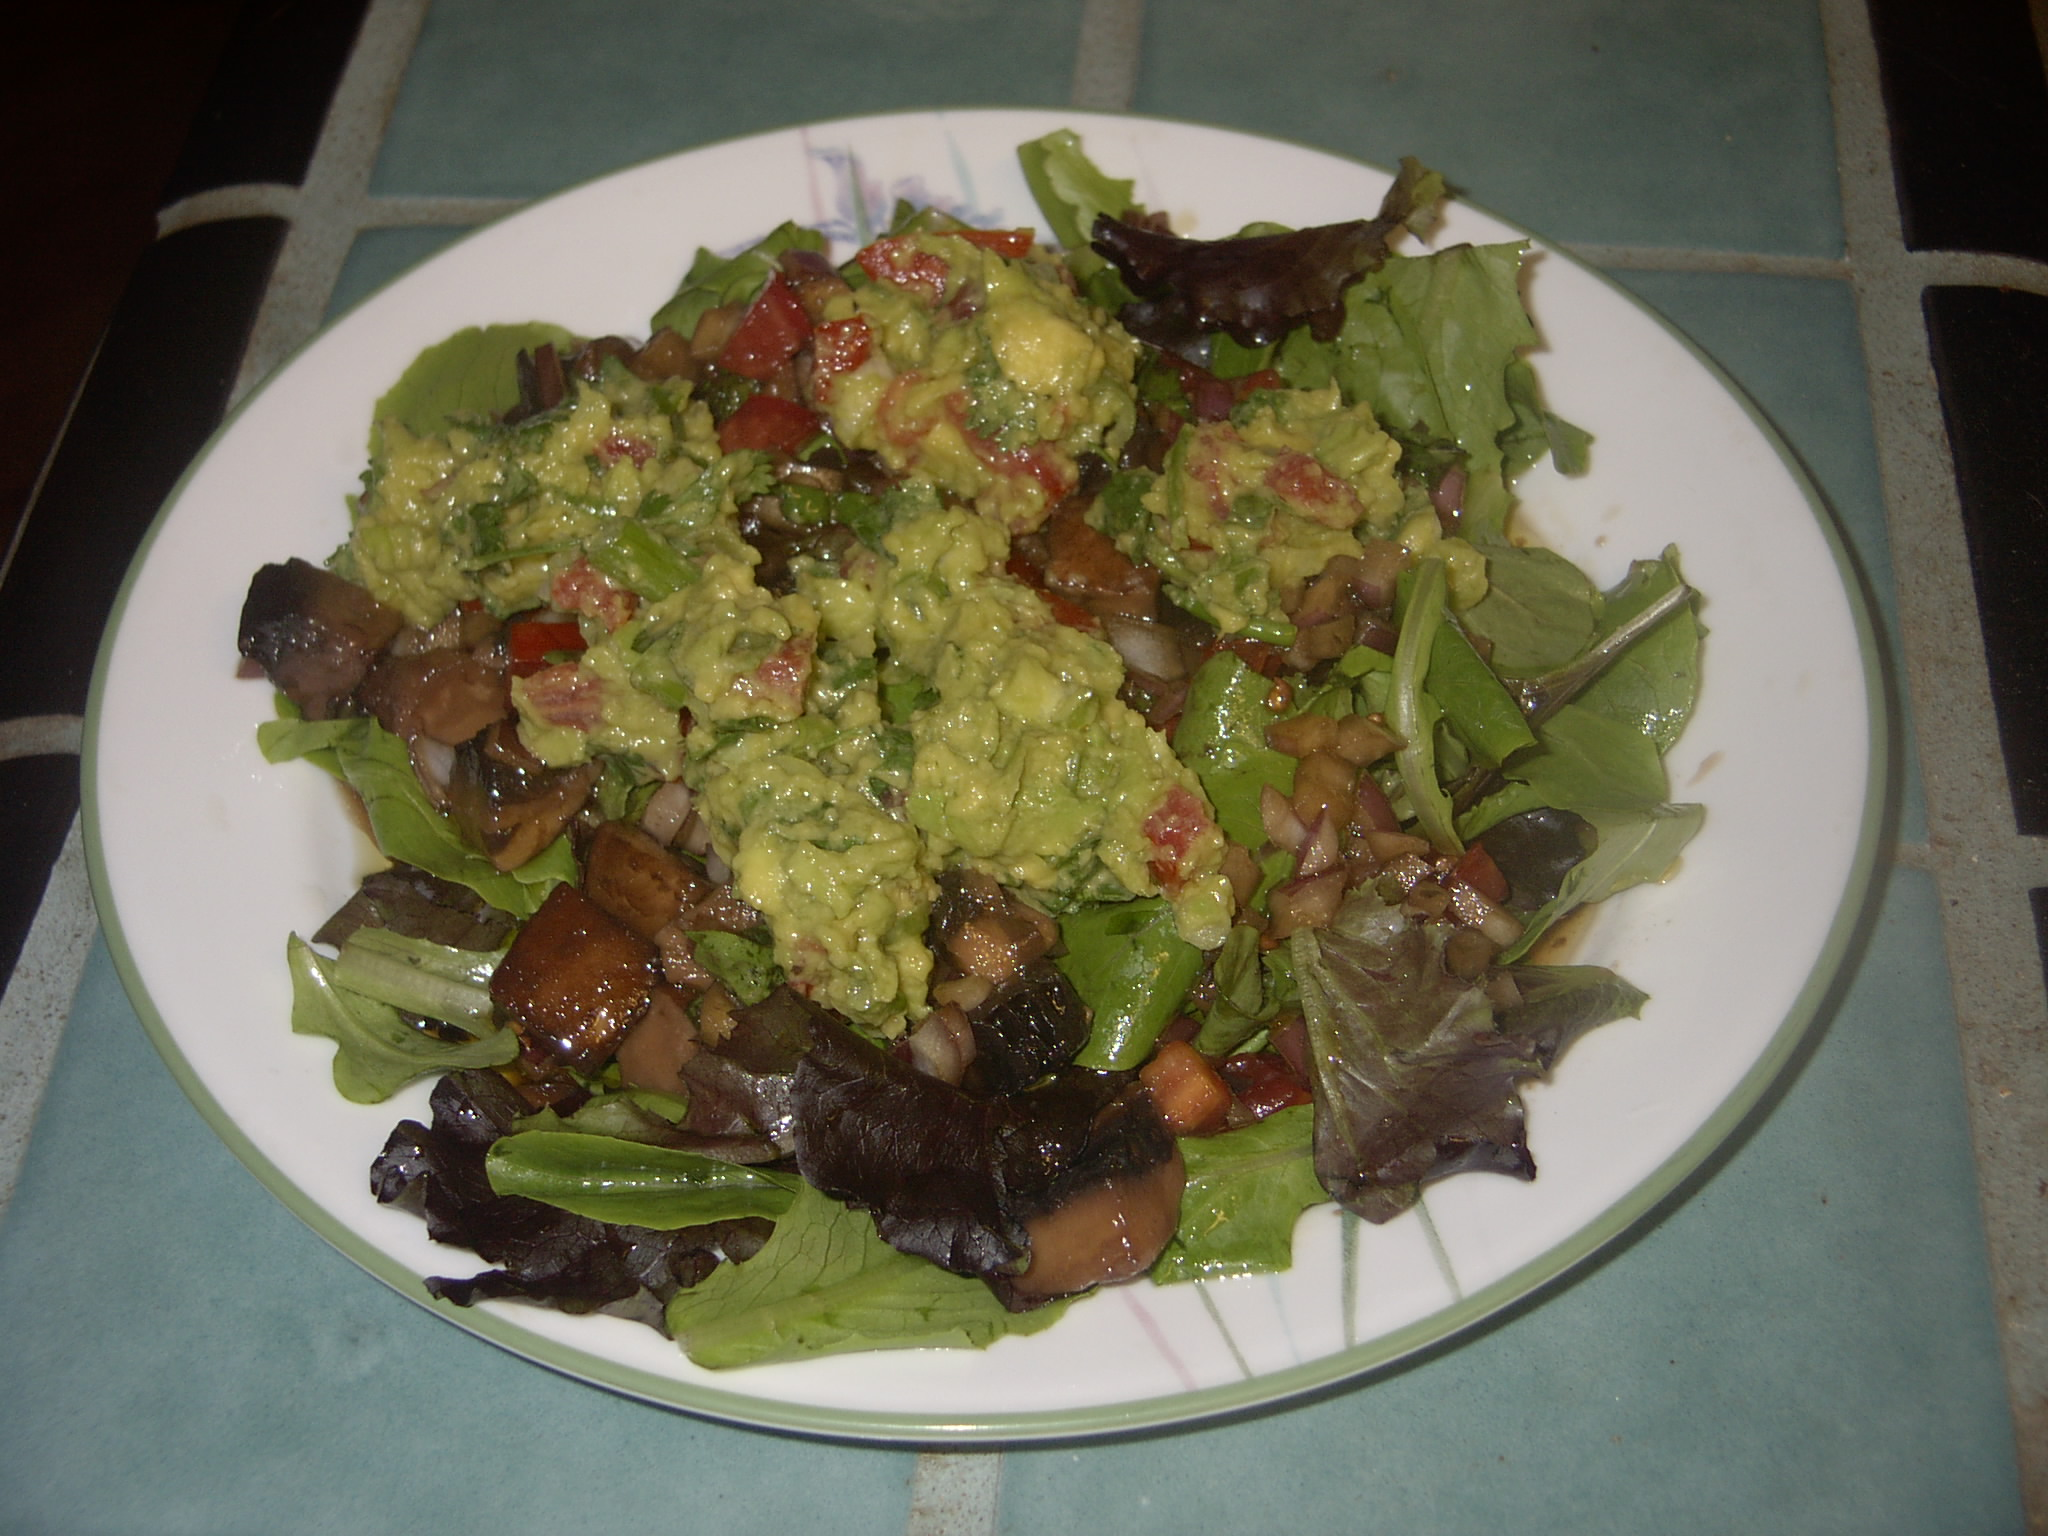 Mixed Baby Greens with Marinated Portobello Mushrooms & Guacamole... YUM!!